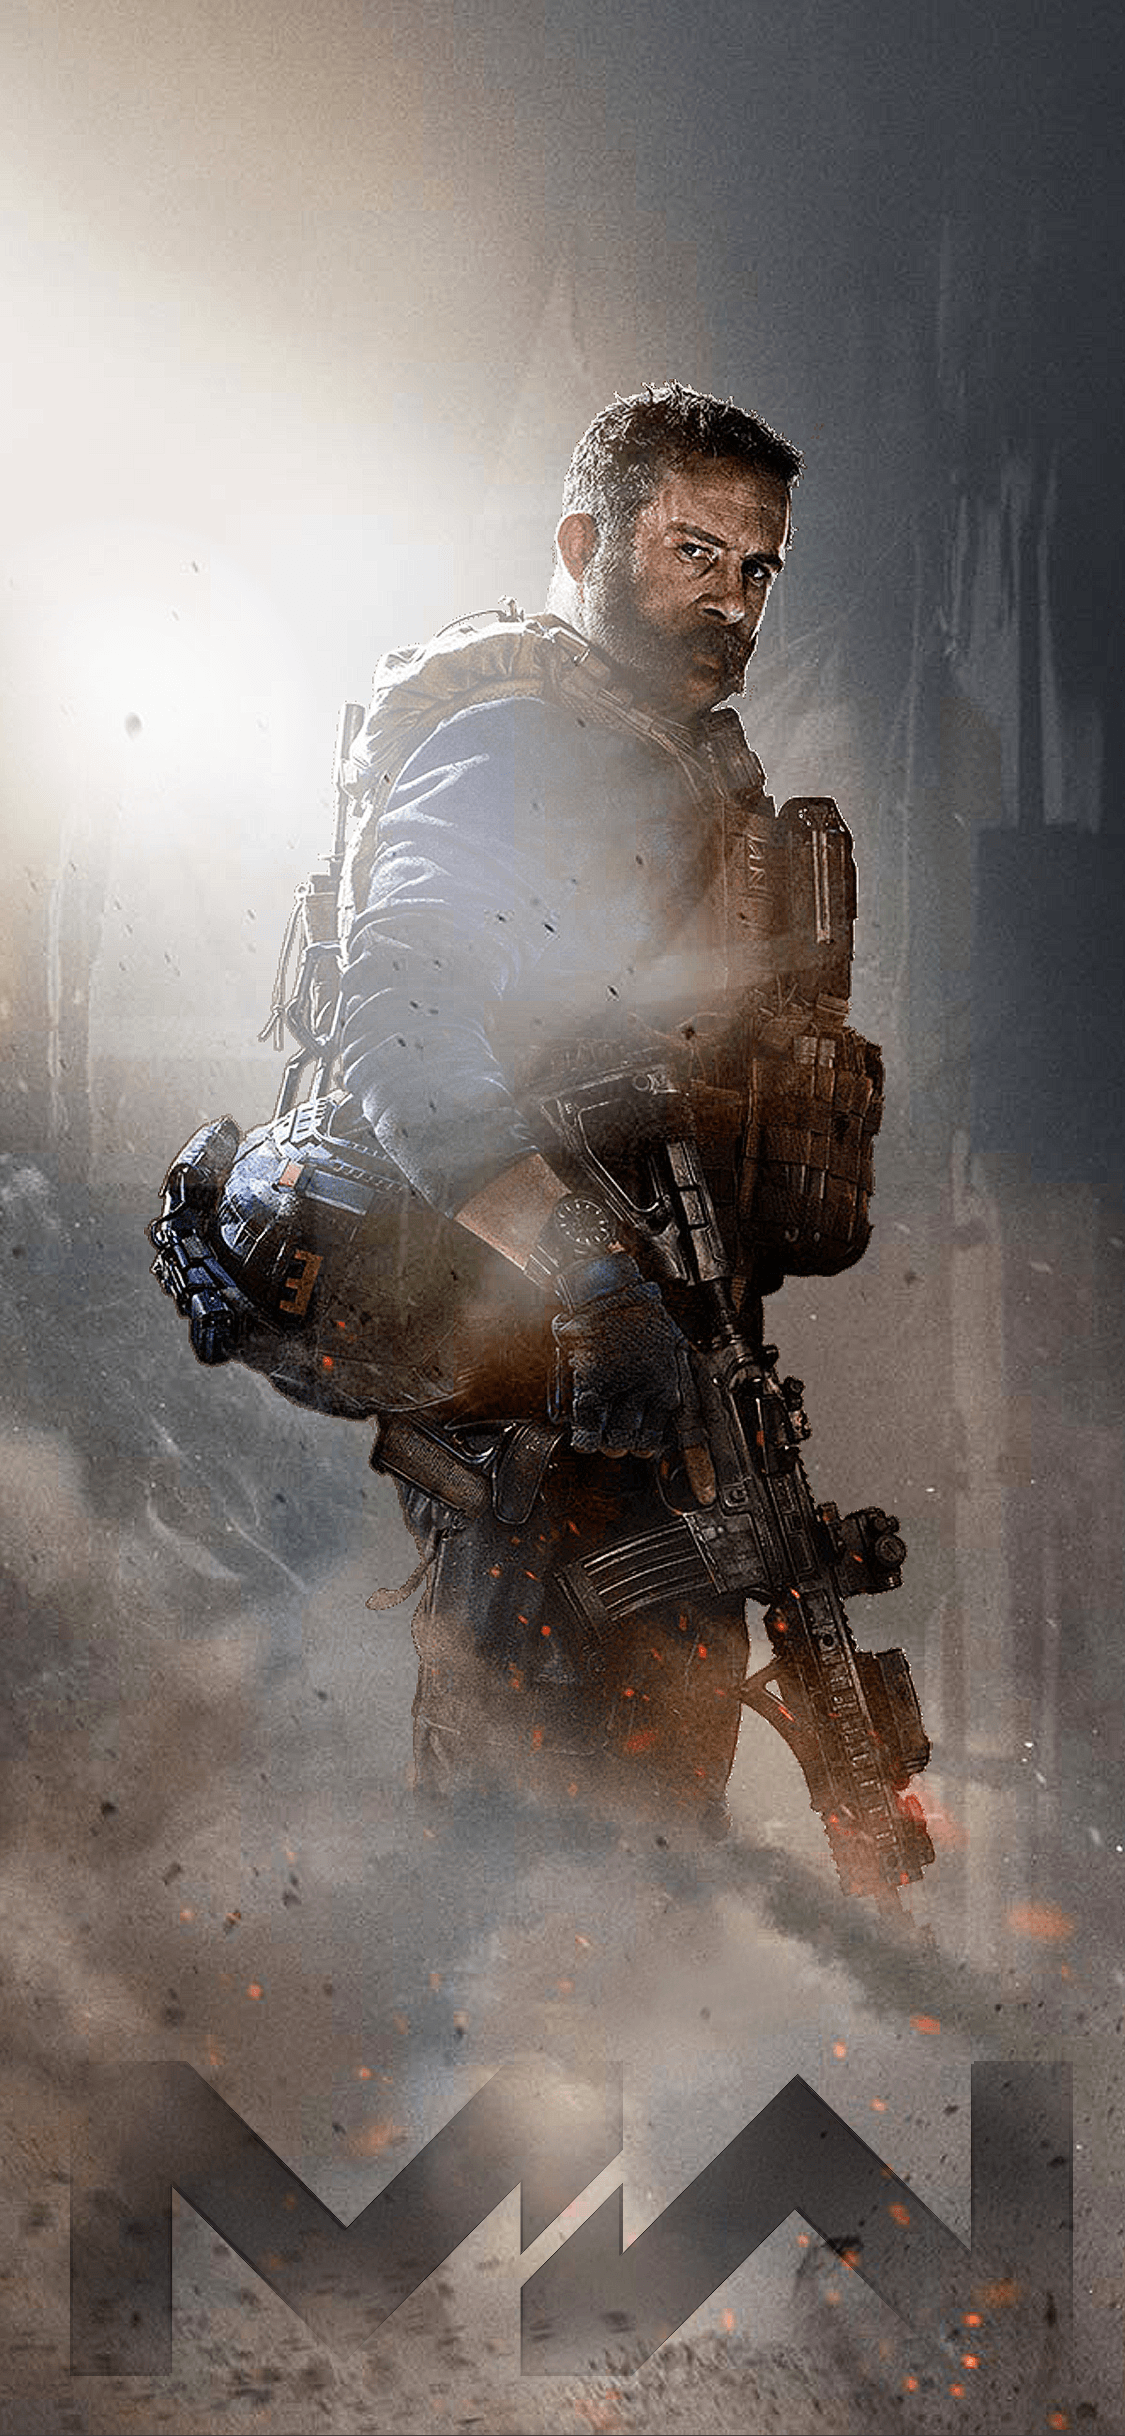 Call Of Duty Modern Warfare Iphone Wallpapers Wallpaper Cave